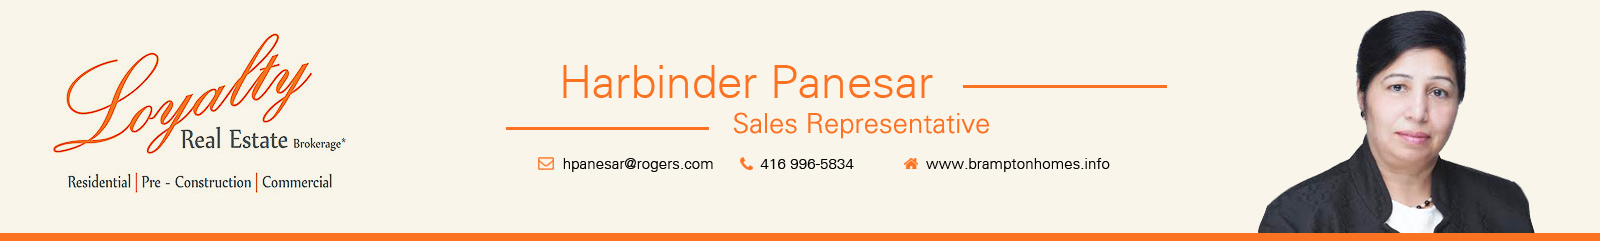 Harbinder Panesar Real Estate